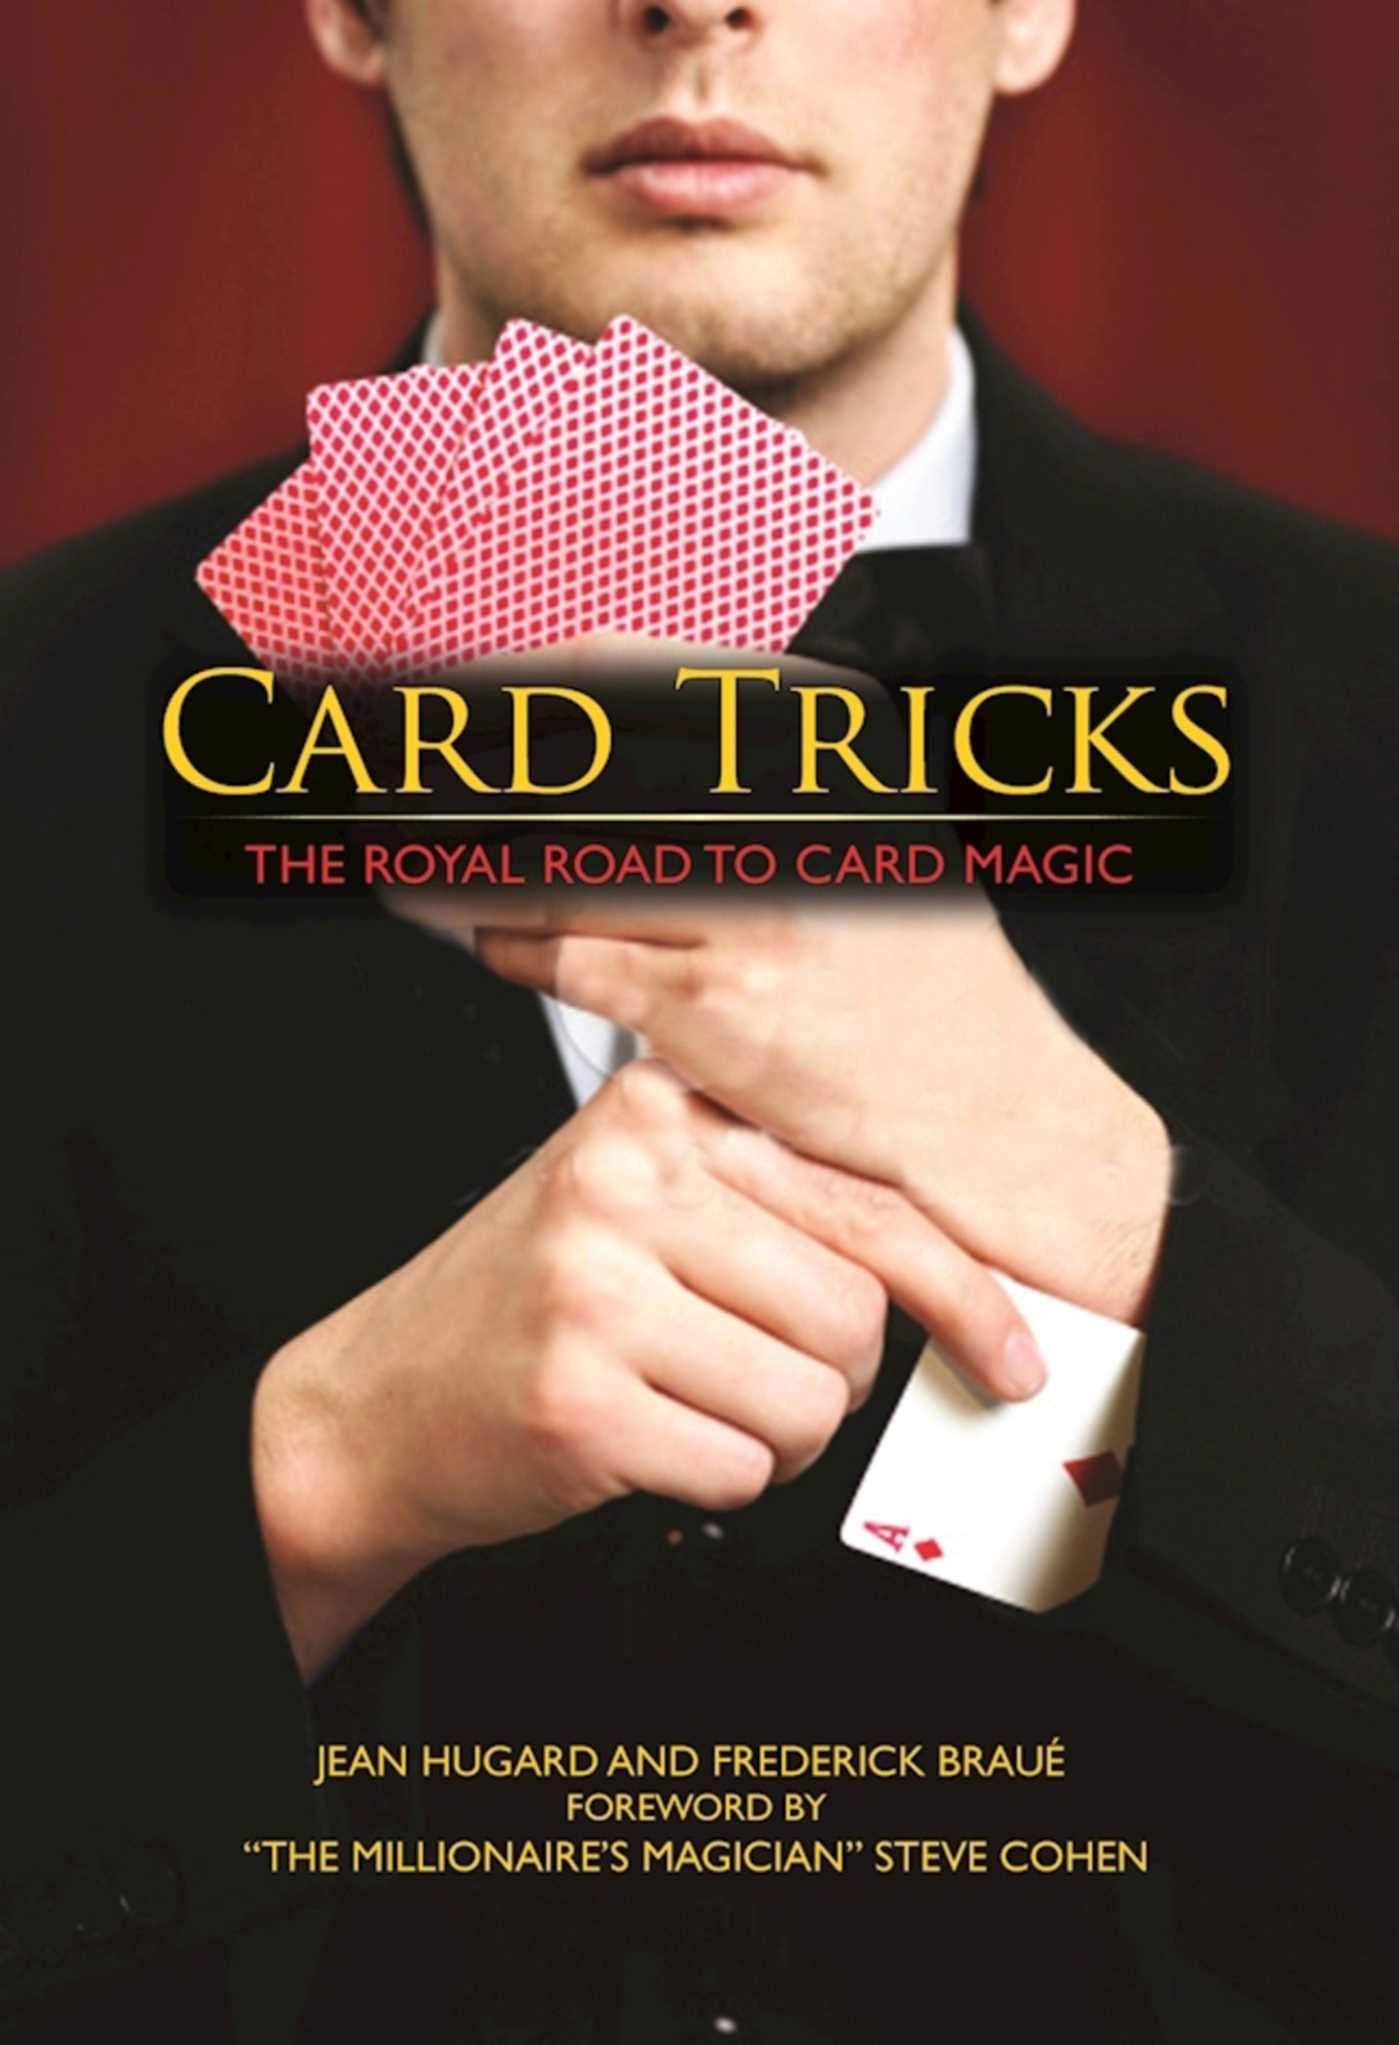 Amazon.com: Card Tricks: The Royal Road to Card Magic (9781944686277): Jean  Hugard, Frederick Braue, Steven Cohen: Books